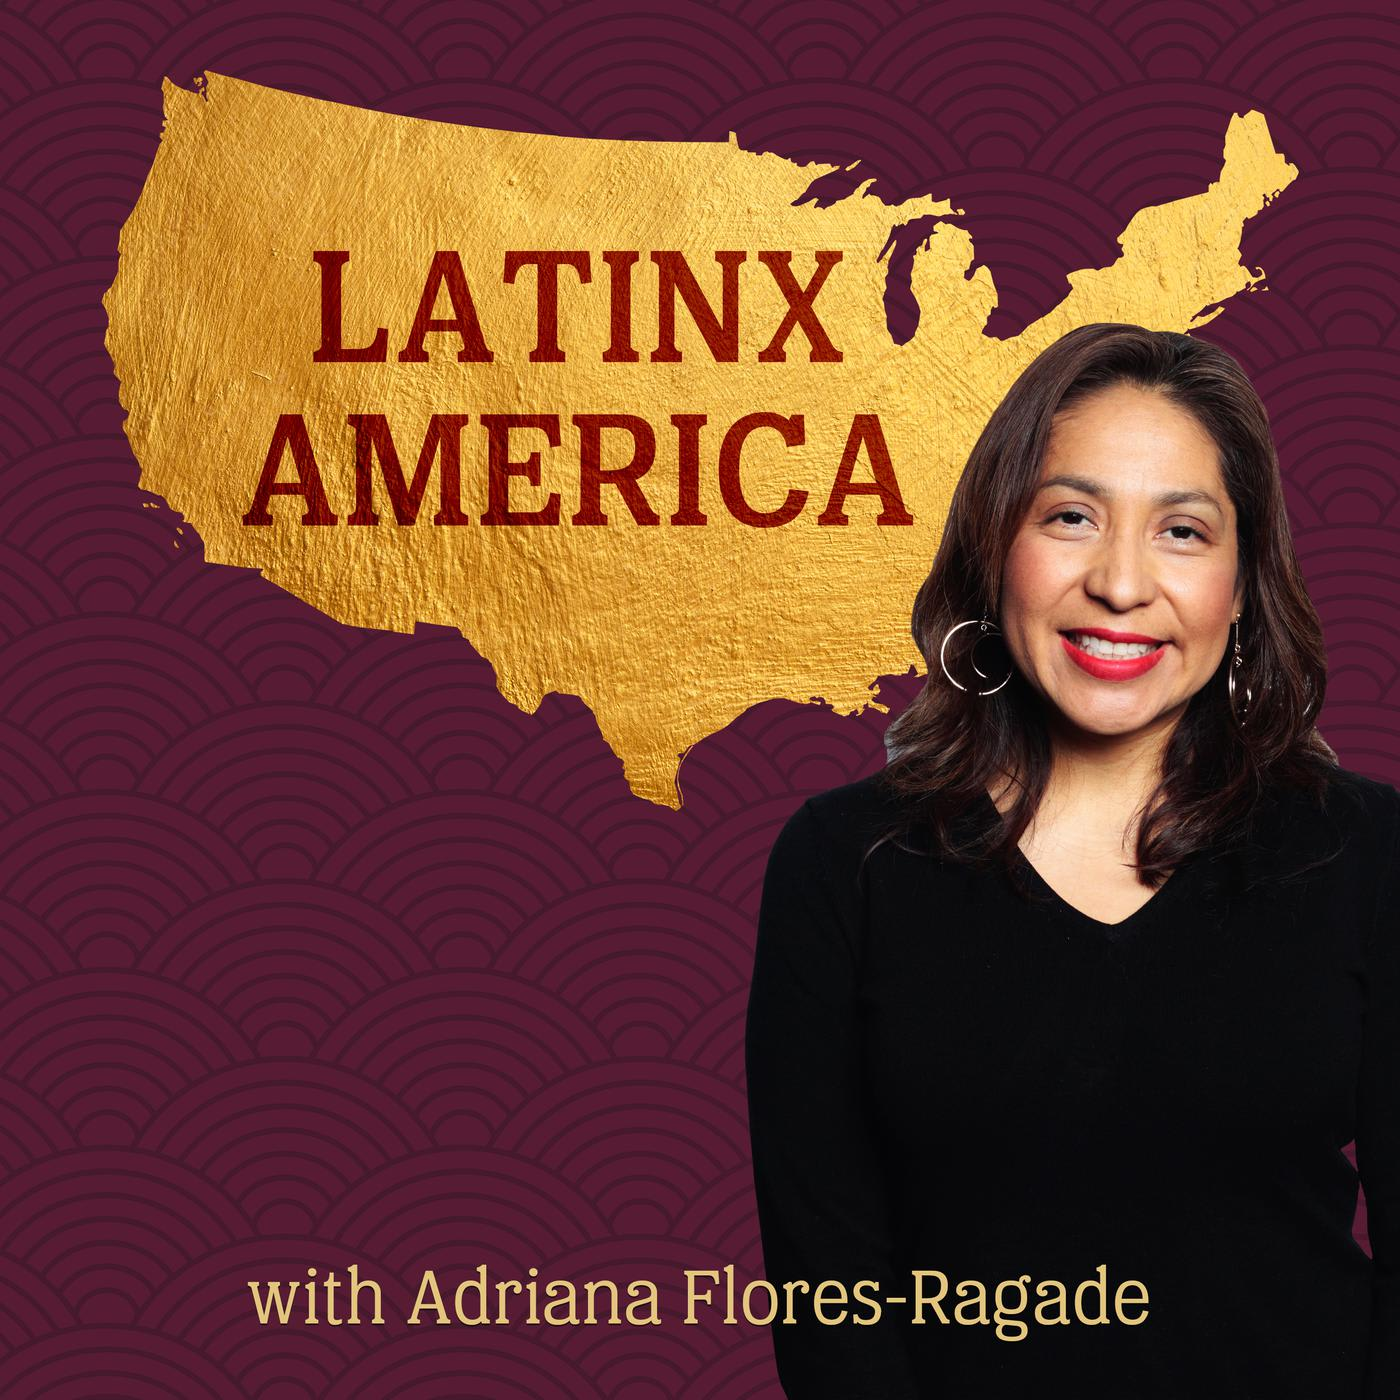 LatinxAmerica's podcast: Building a Binational Ecosystem in Nogales fostering tech and innovation